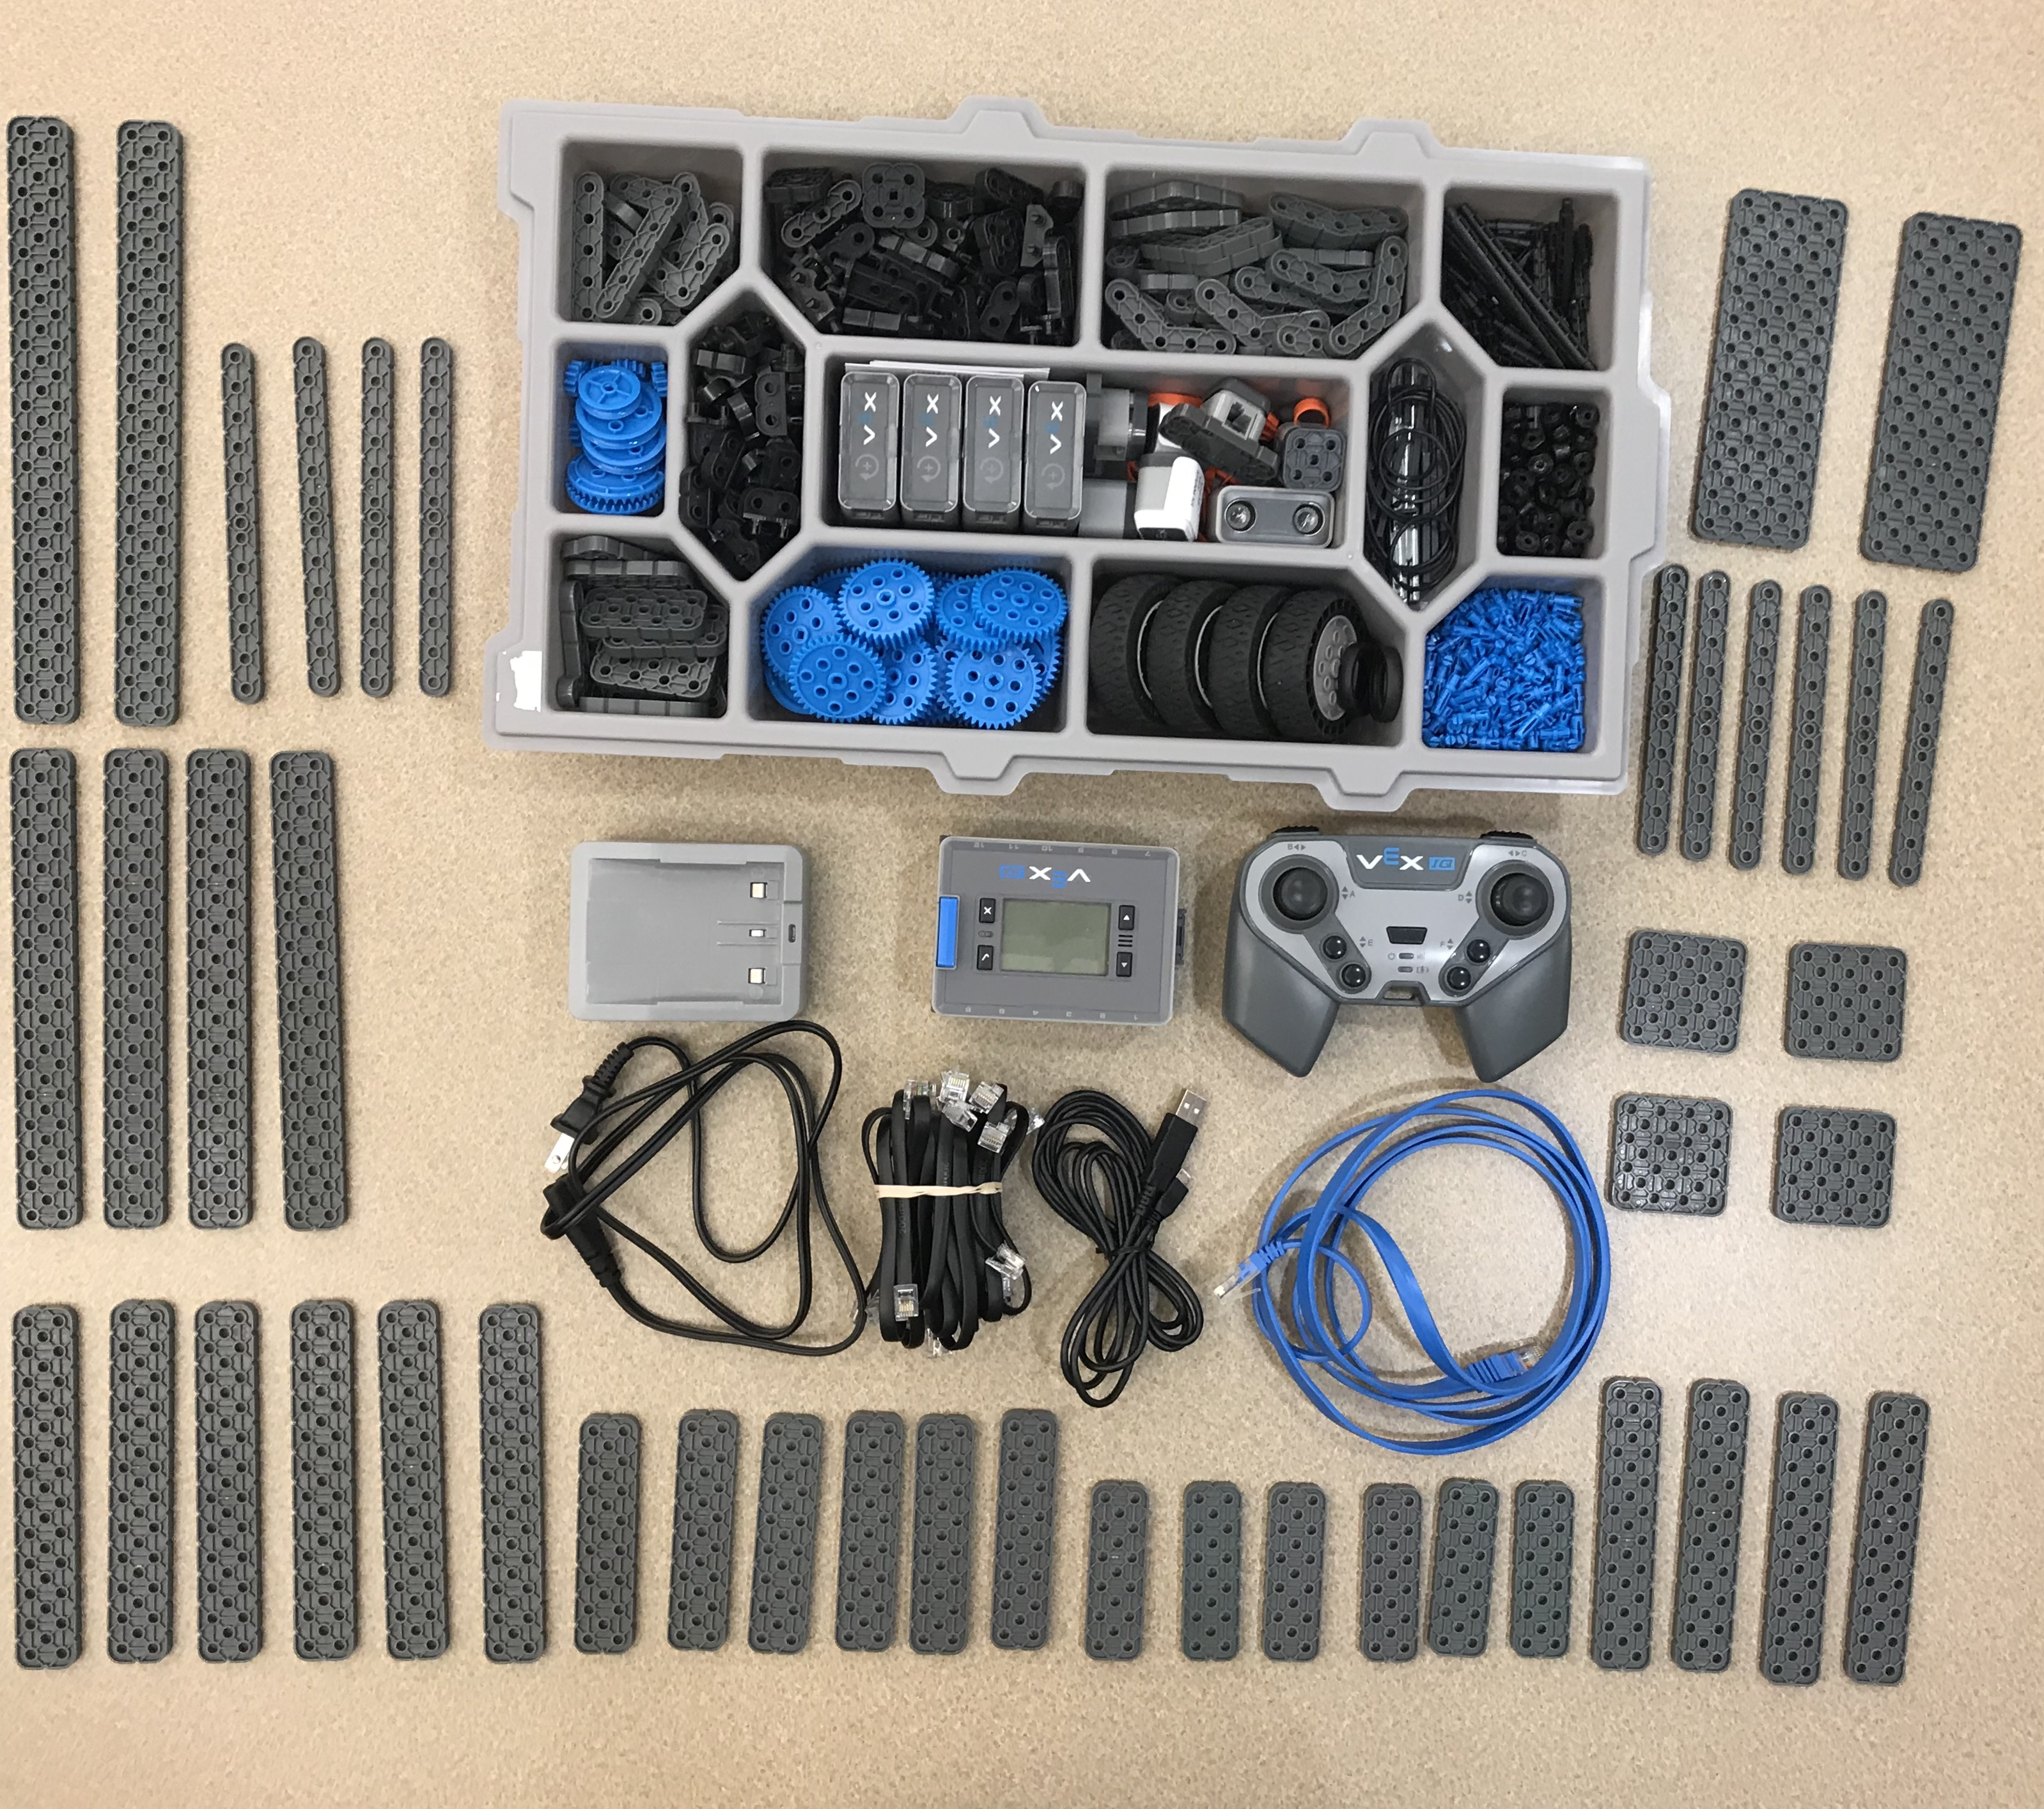 Parts of the Vex IQ Super Kit laid out unassembled including wheels, connectors, platforms, batteries, controllers, wires, and control centers